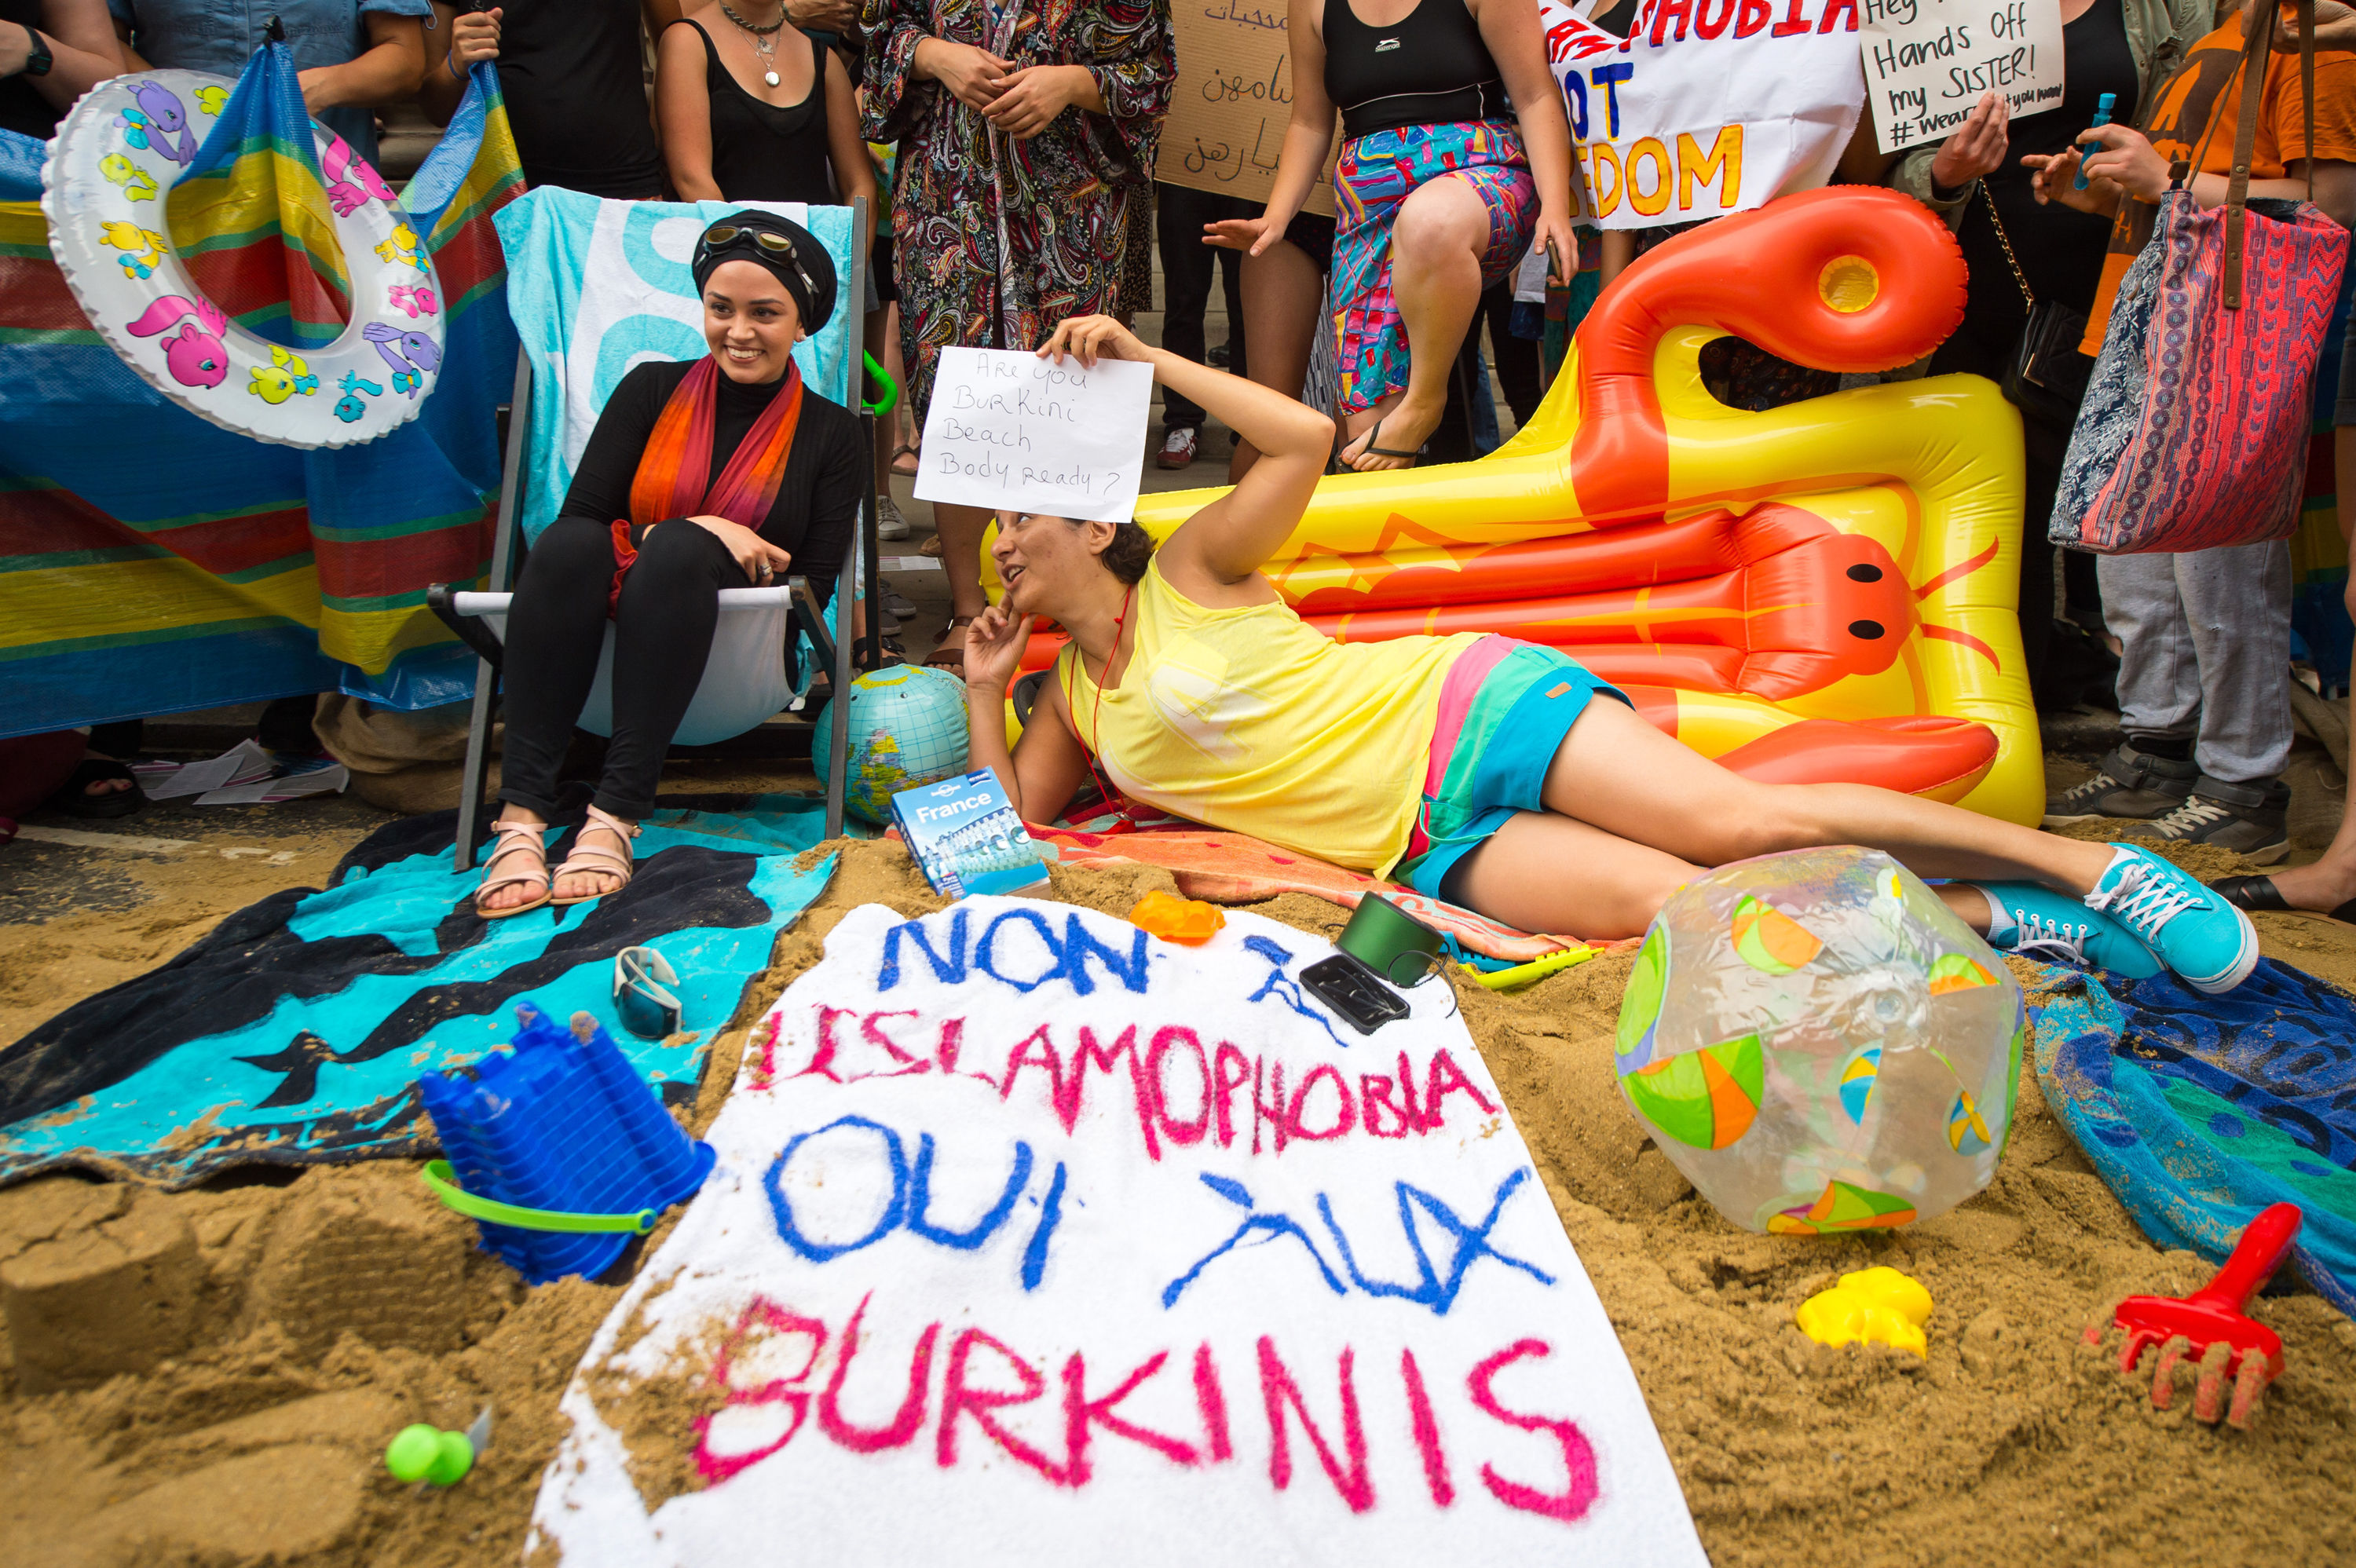 burkini3 Frances Burkini Ban Is Illegal According To Their Own High Court